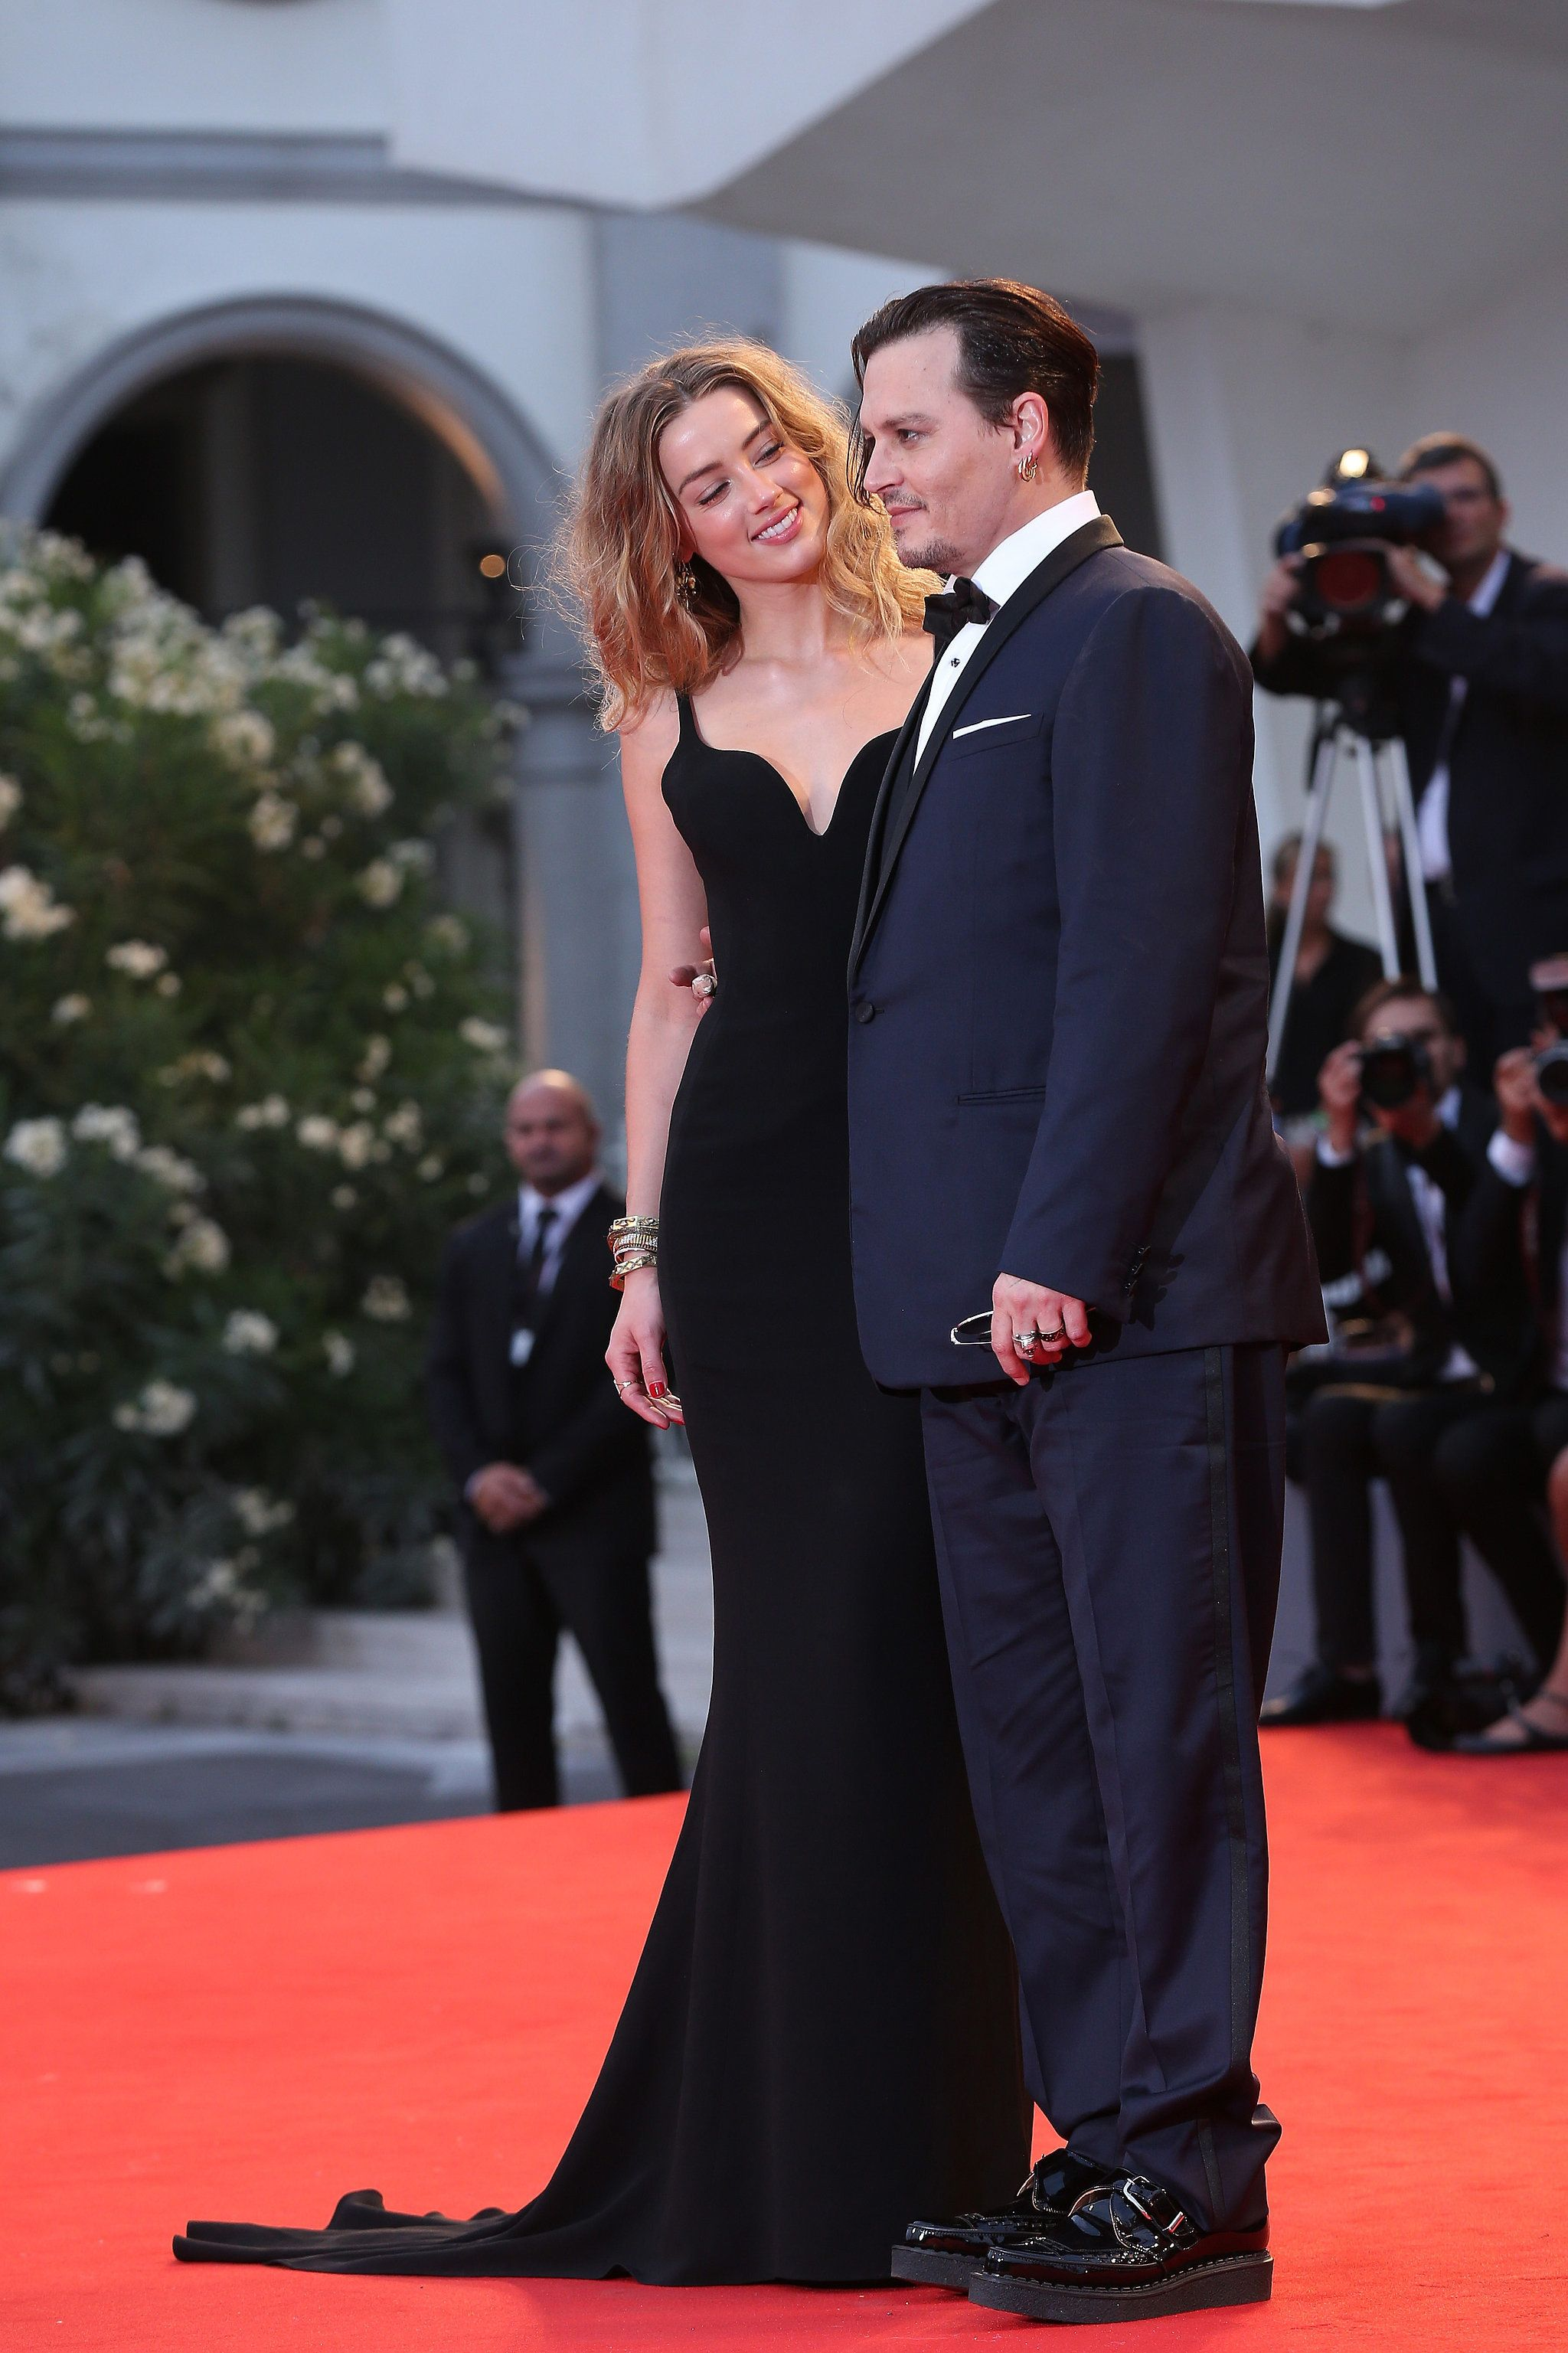 Johnny Depp And Amber Heard Share The Look Of Love On The Red Carpet Johnny Depp And Amber Johnny Depp Amber Heard